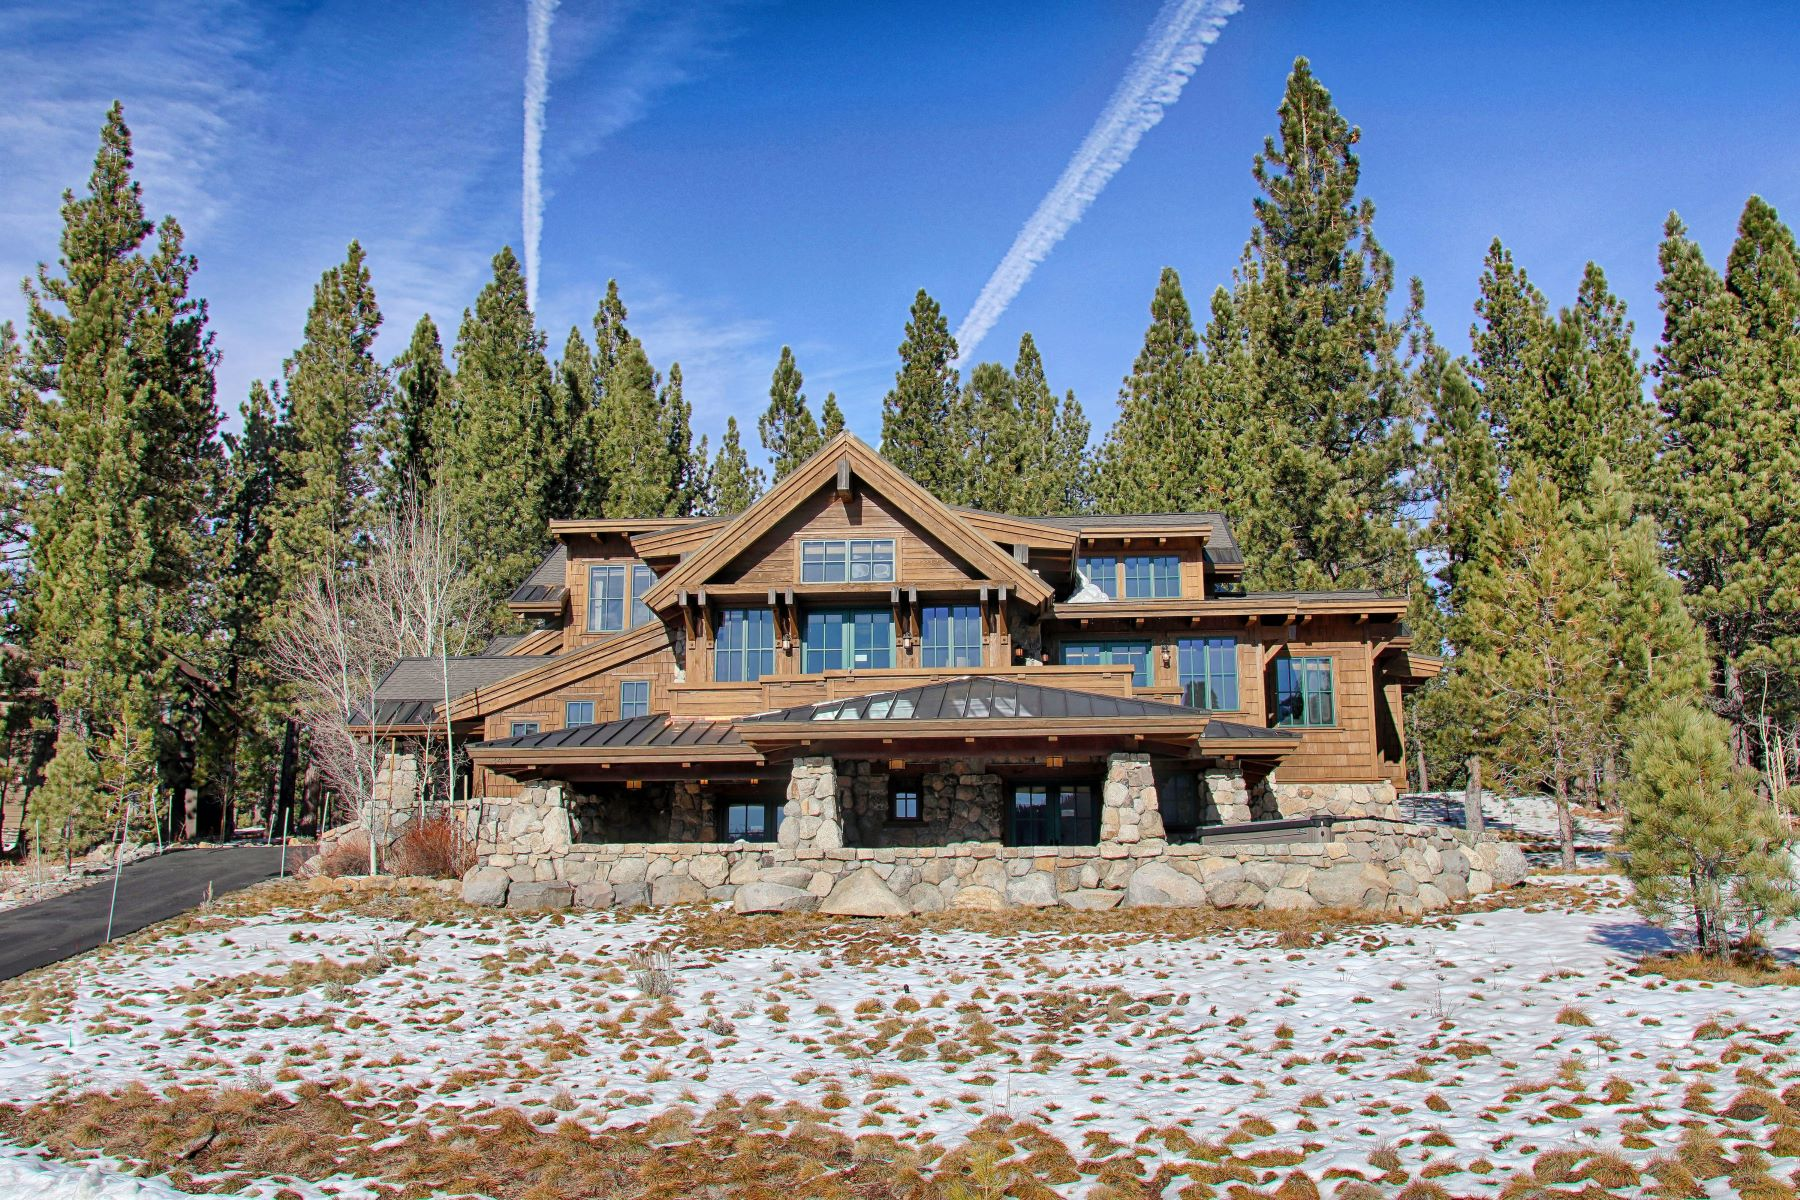 Property 为 销售 在 340 Elias Baldwin, Truckee, California 96161 340 Elias Baldwin 特拉基, 加利福尼亚州 96161 美国